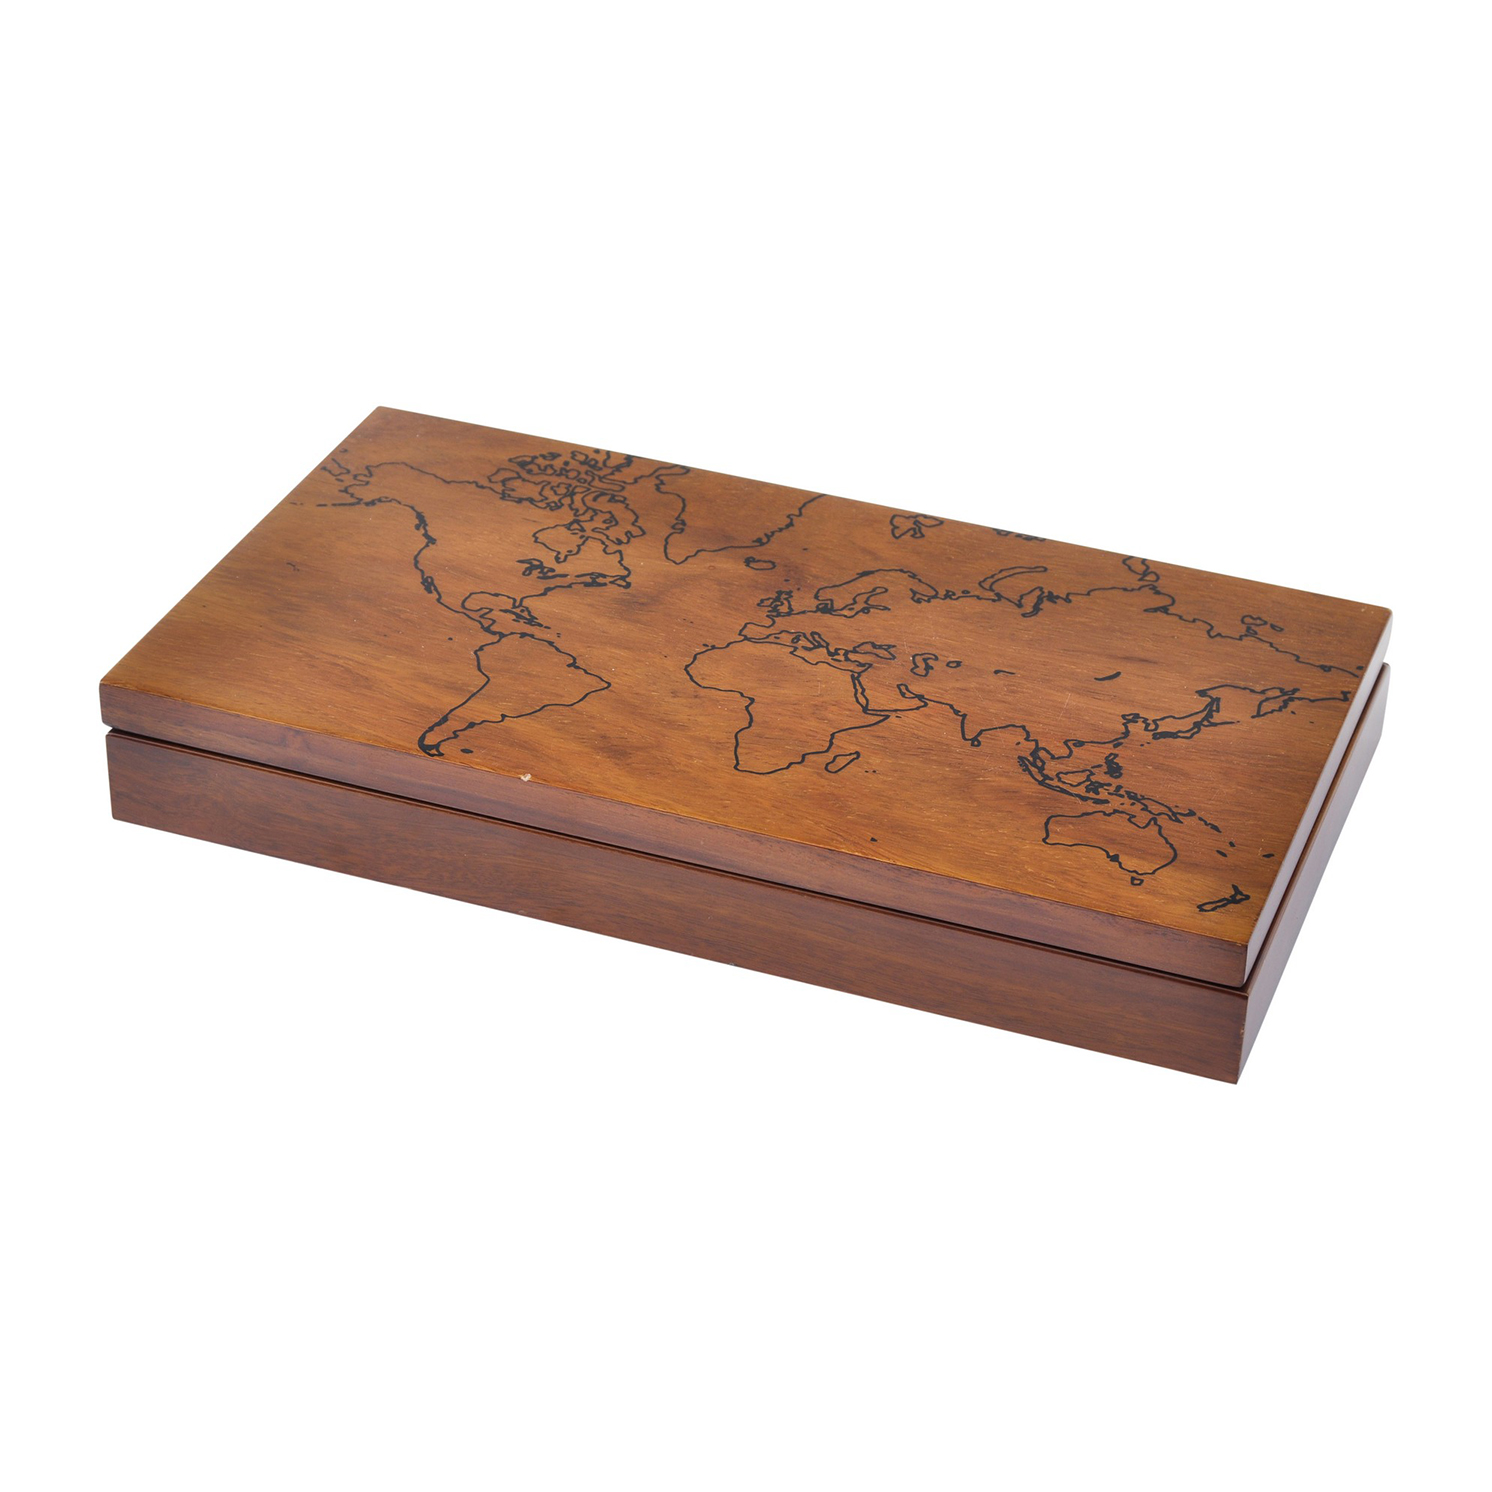 Libra – Burnham World Map Trinket Box in Sheesham Wood